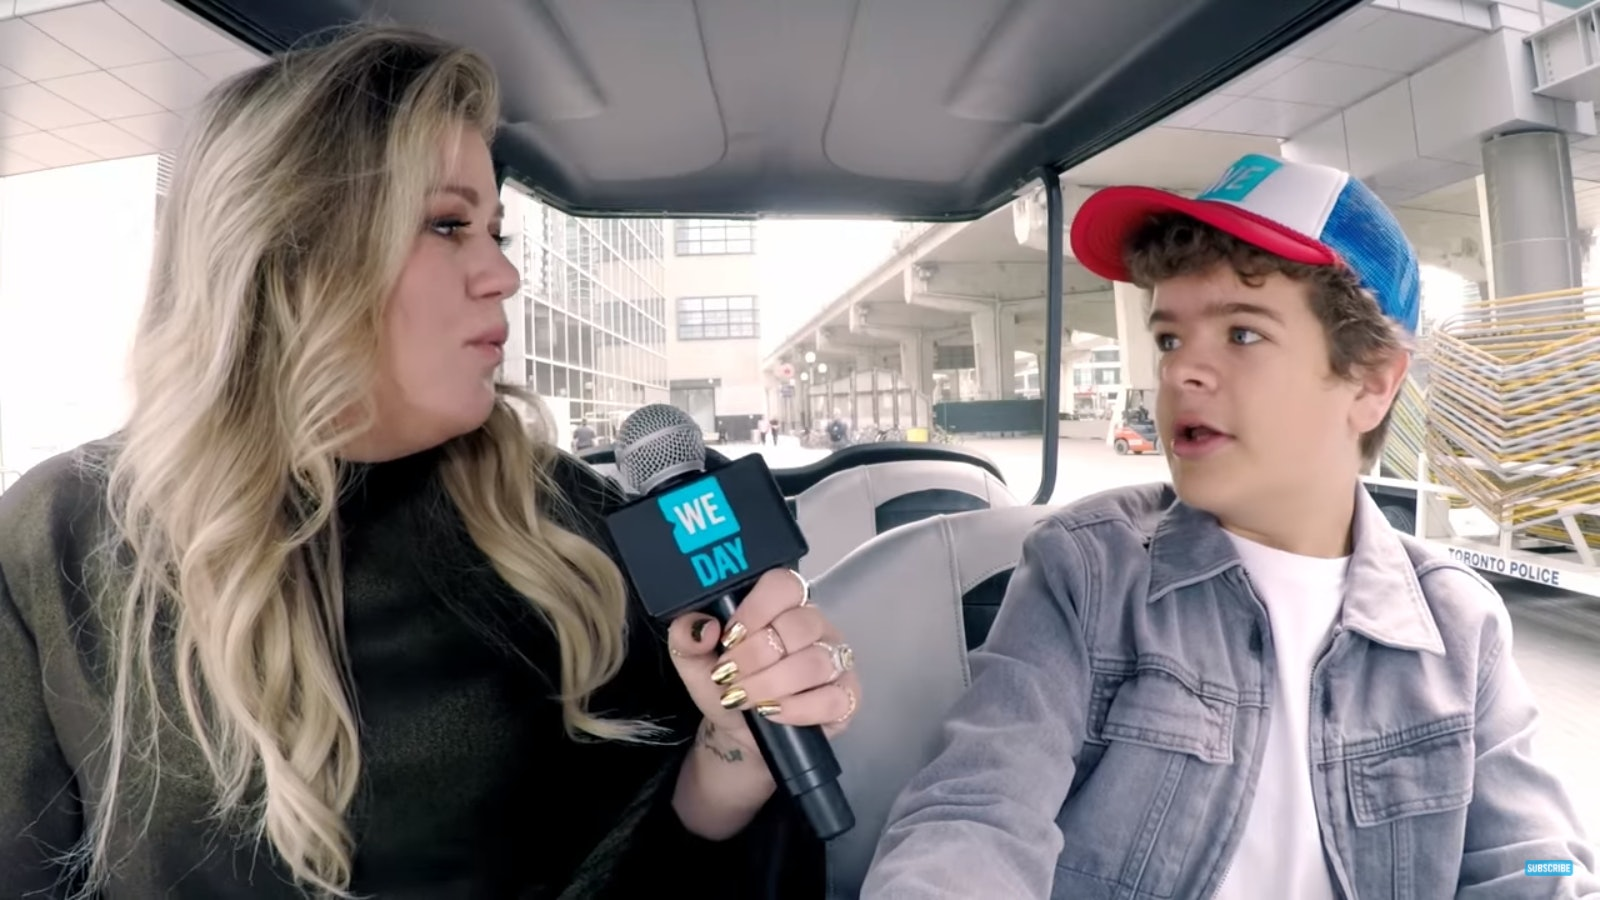 'Stranger Things' Actor Gaten Matarazzo Helps Kelly Clarkson Do Vocal Warm-Ups